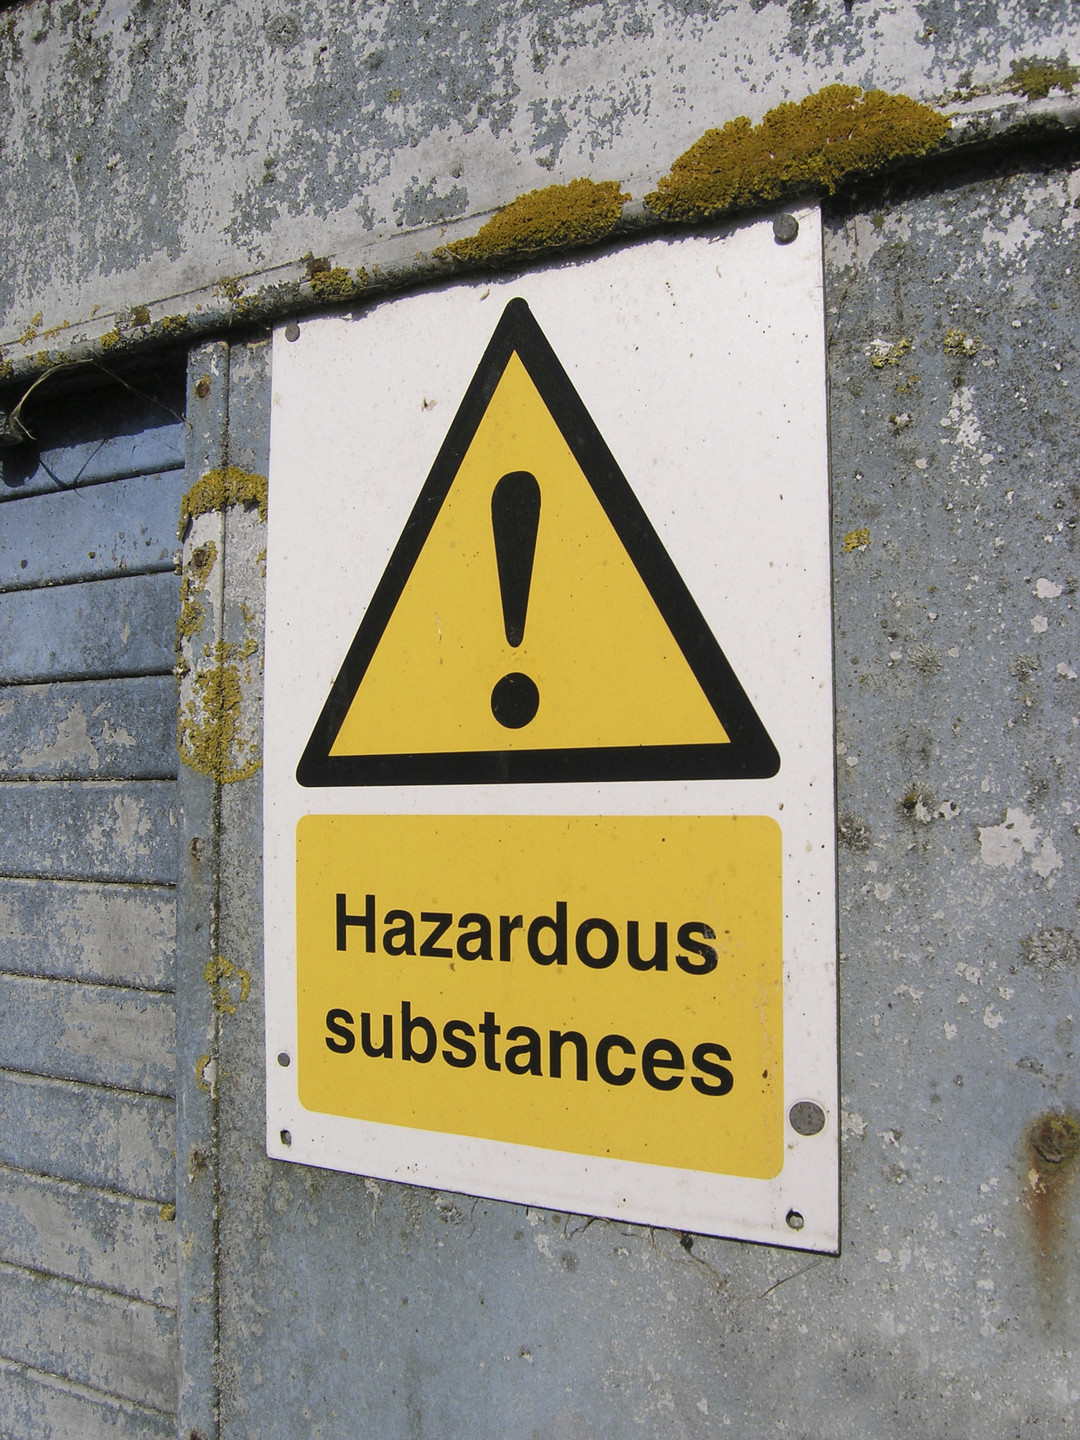 Hazardous substance screening